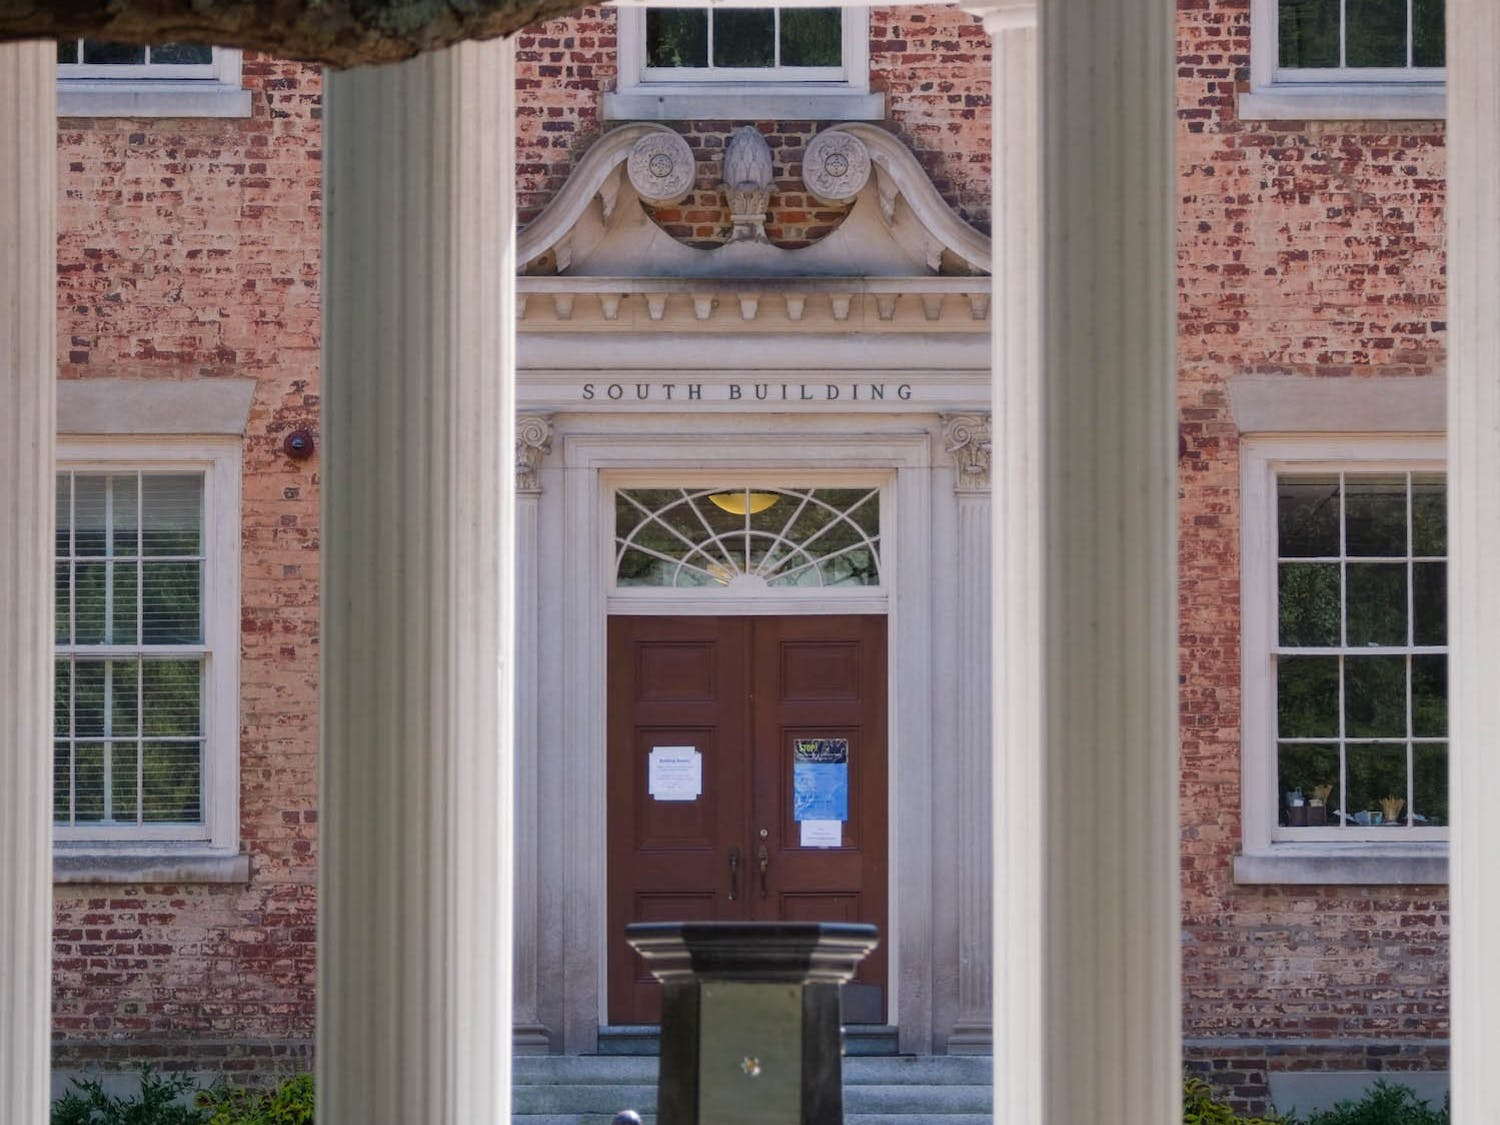 South Building, home to the Office of the Chancellor, as pictured from the Old Well on Sunday, Sept. 12, 2020.